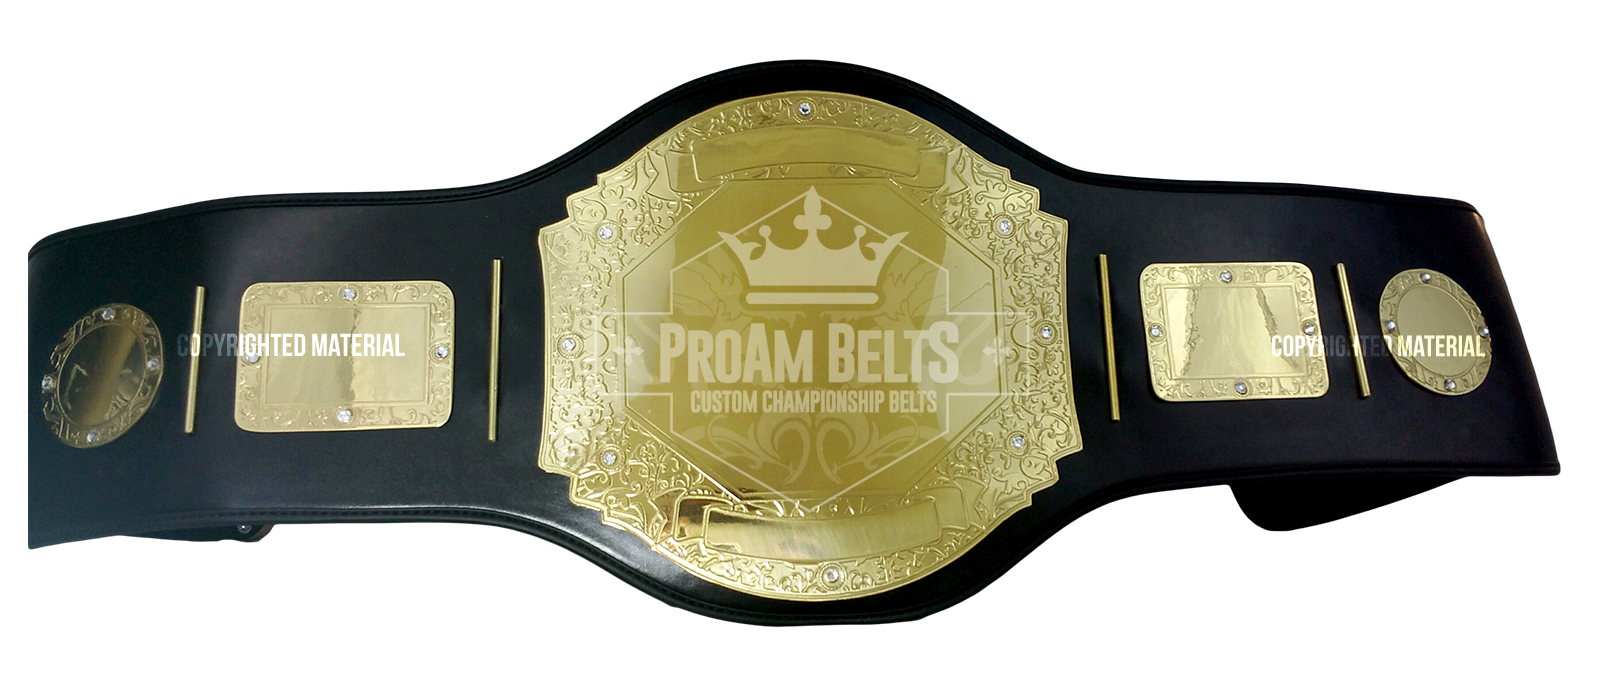 Belt of the Month: Prophet Standard Gold Championship Belt